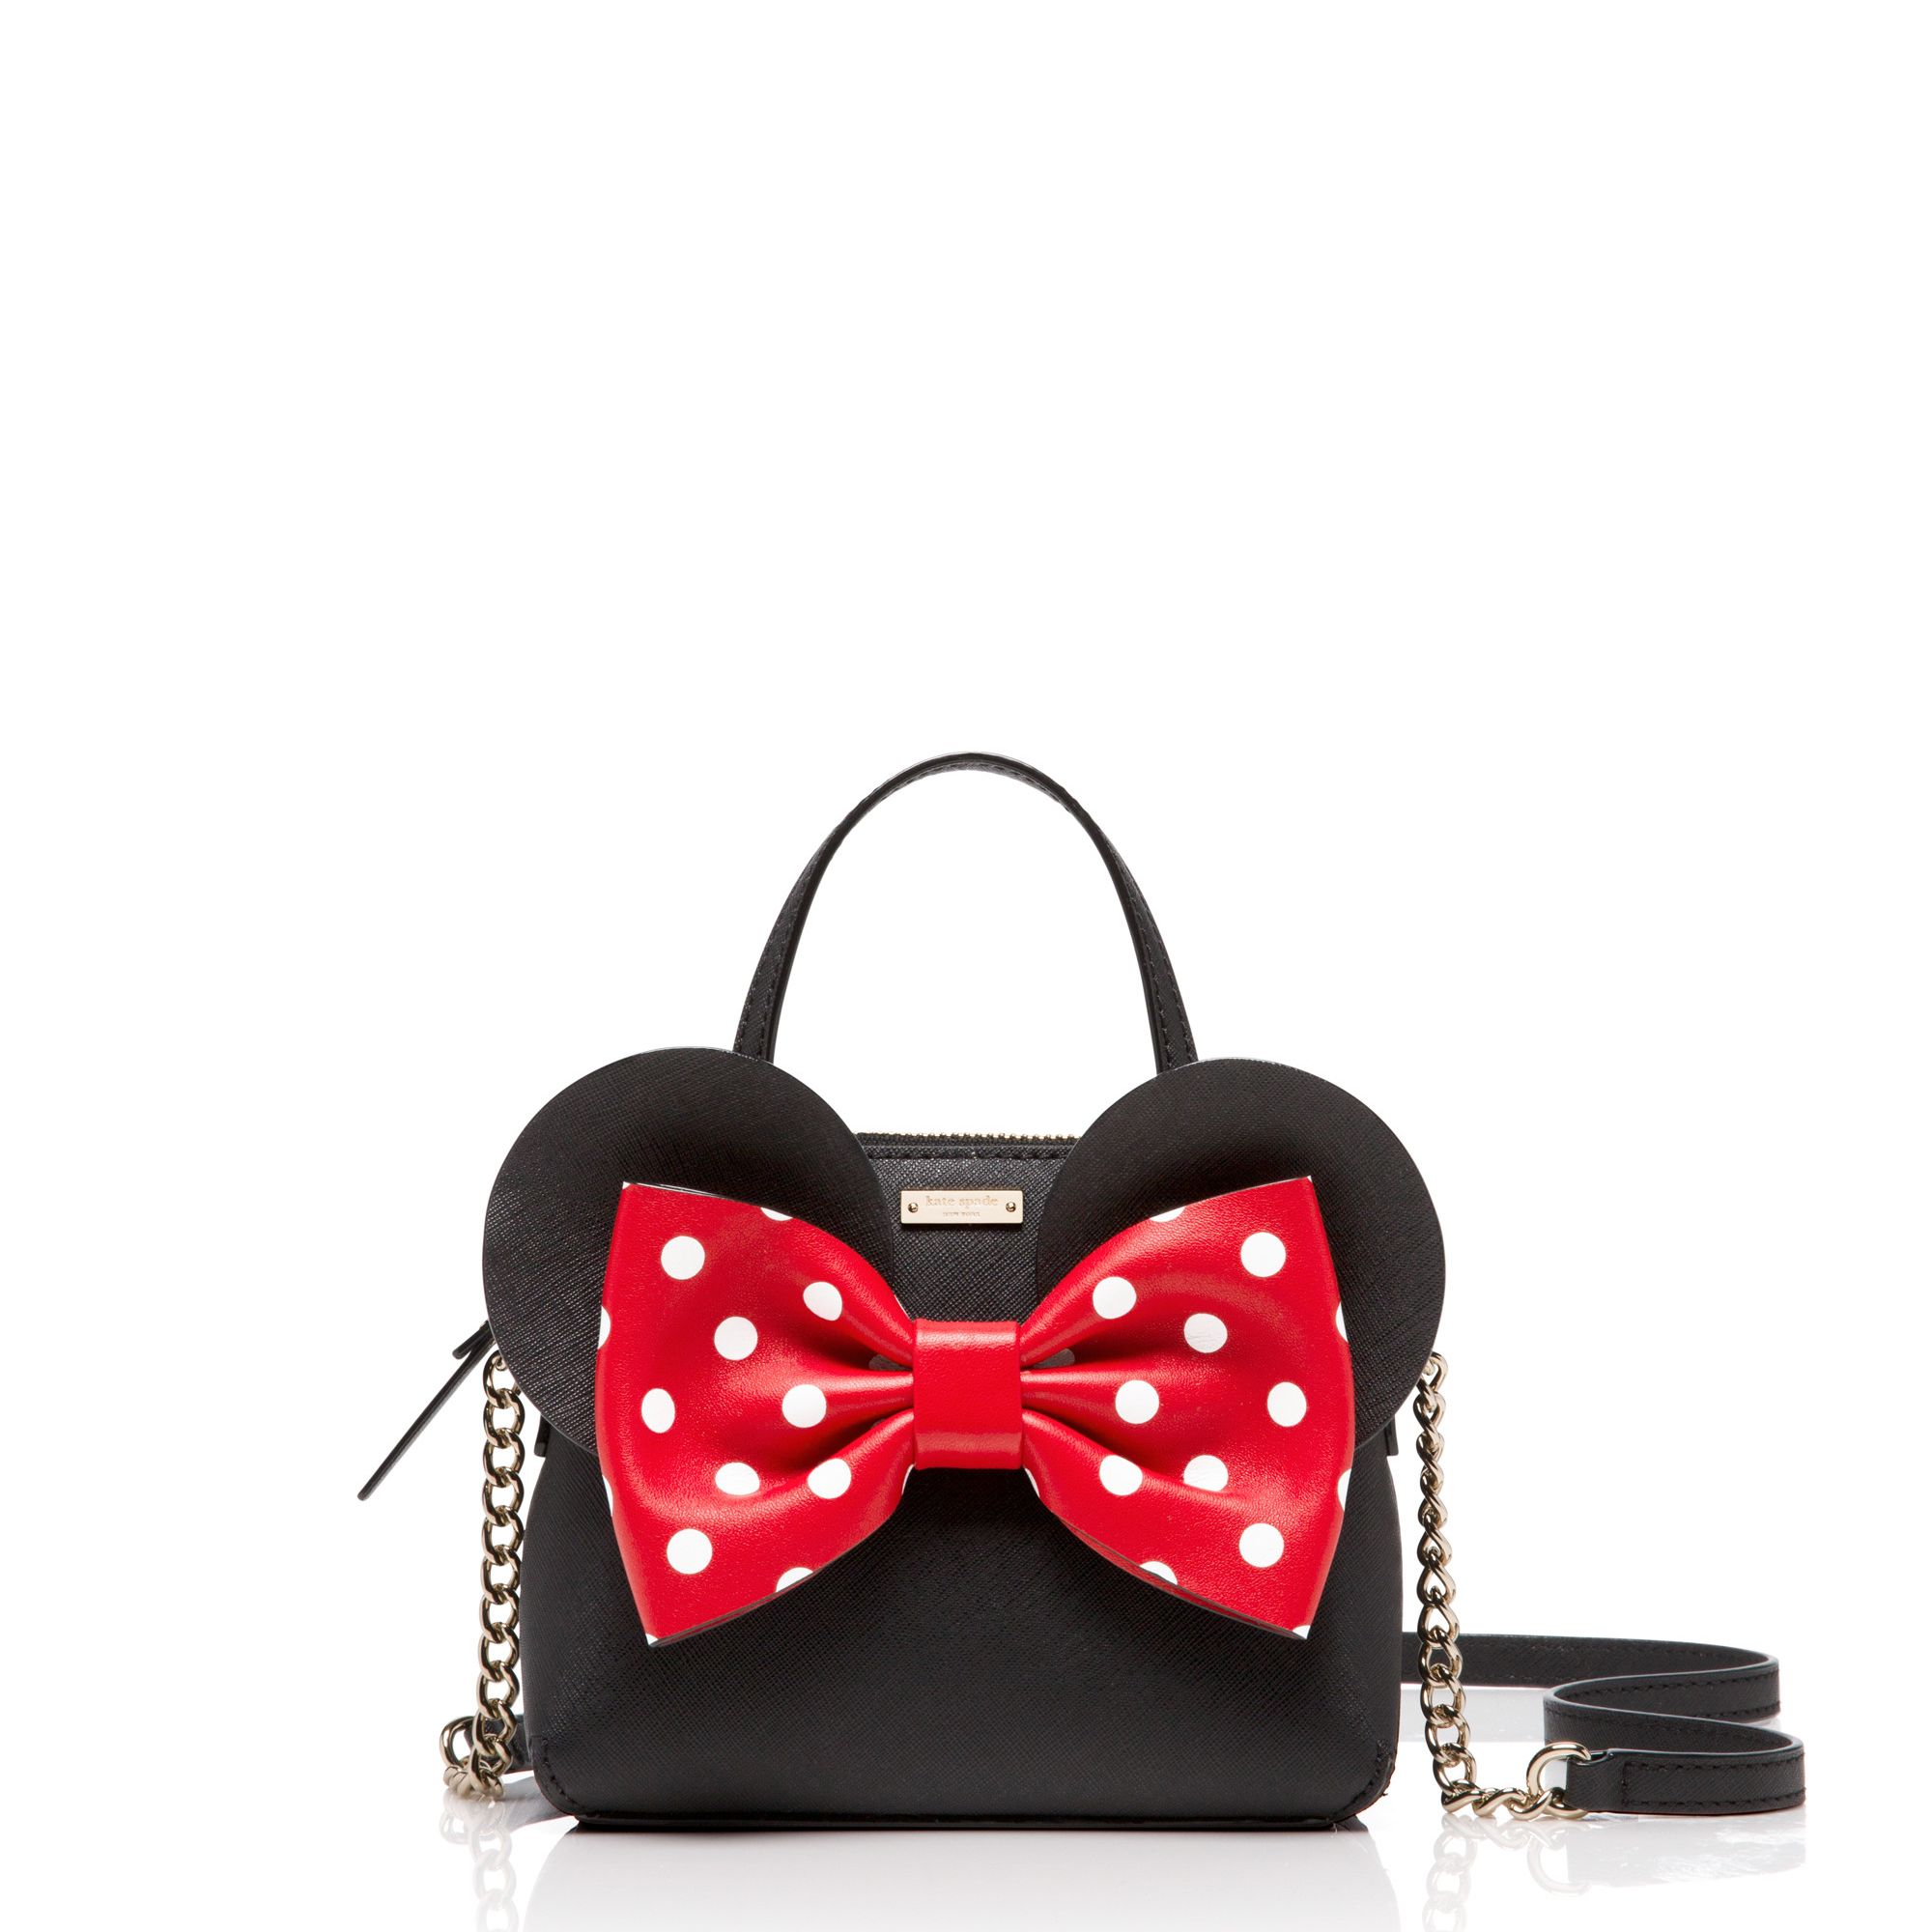 6adffe10fd4 See the New Items in the Kate Spade New York Minnie Mouse Collection ...